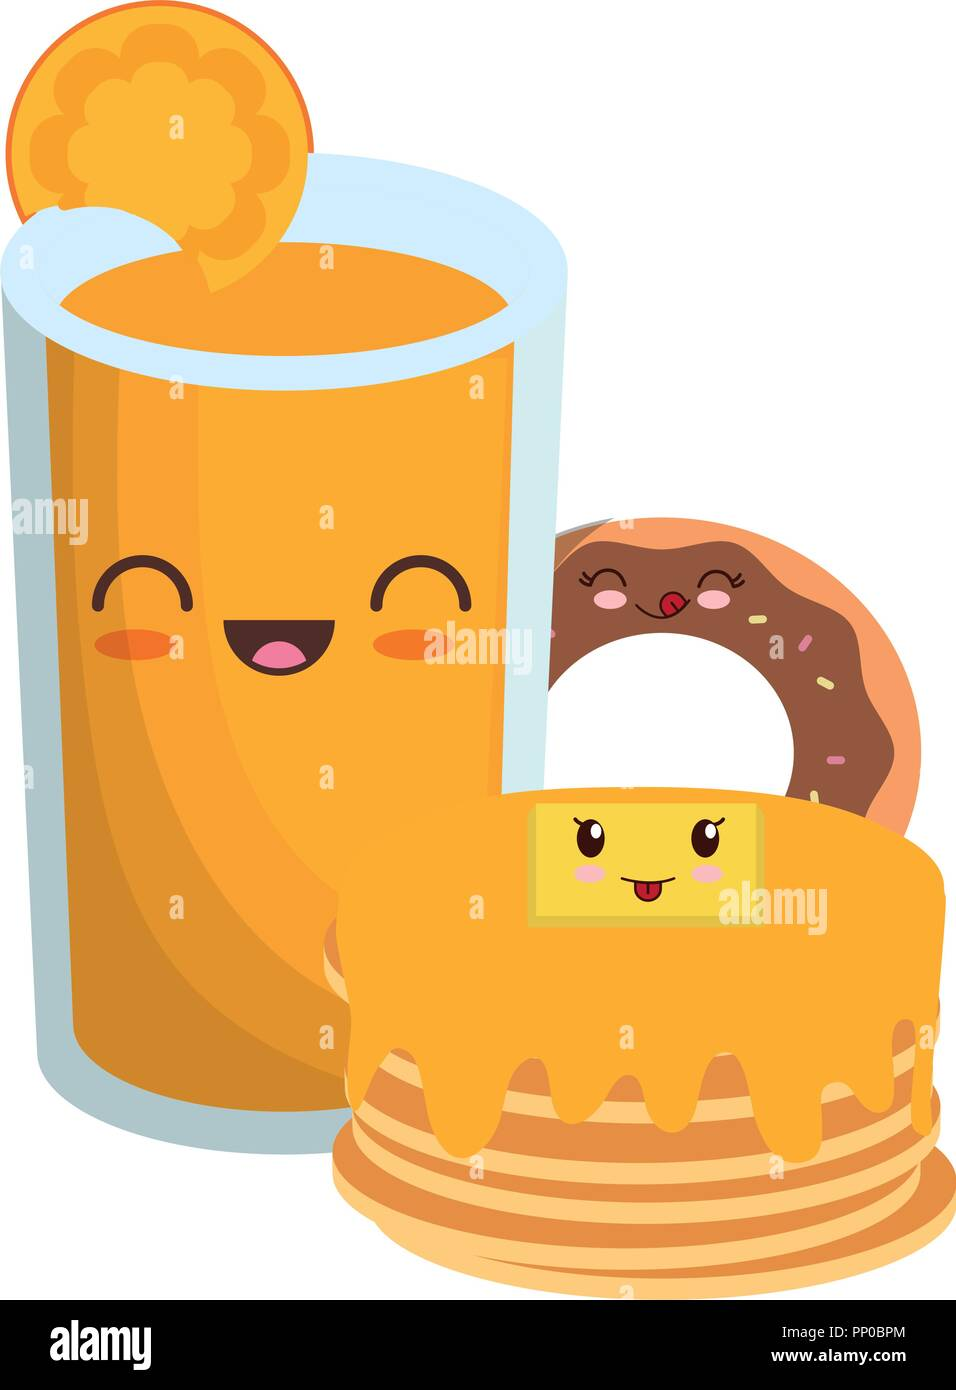 kawaii pancakes with orange juice and donut  over white background, vector illustration - Stock Image